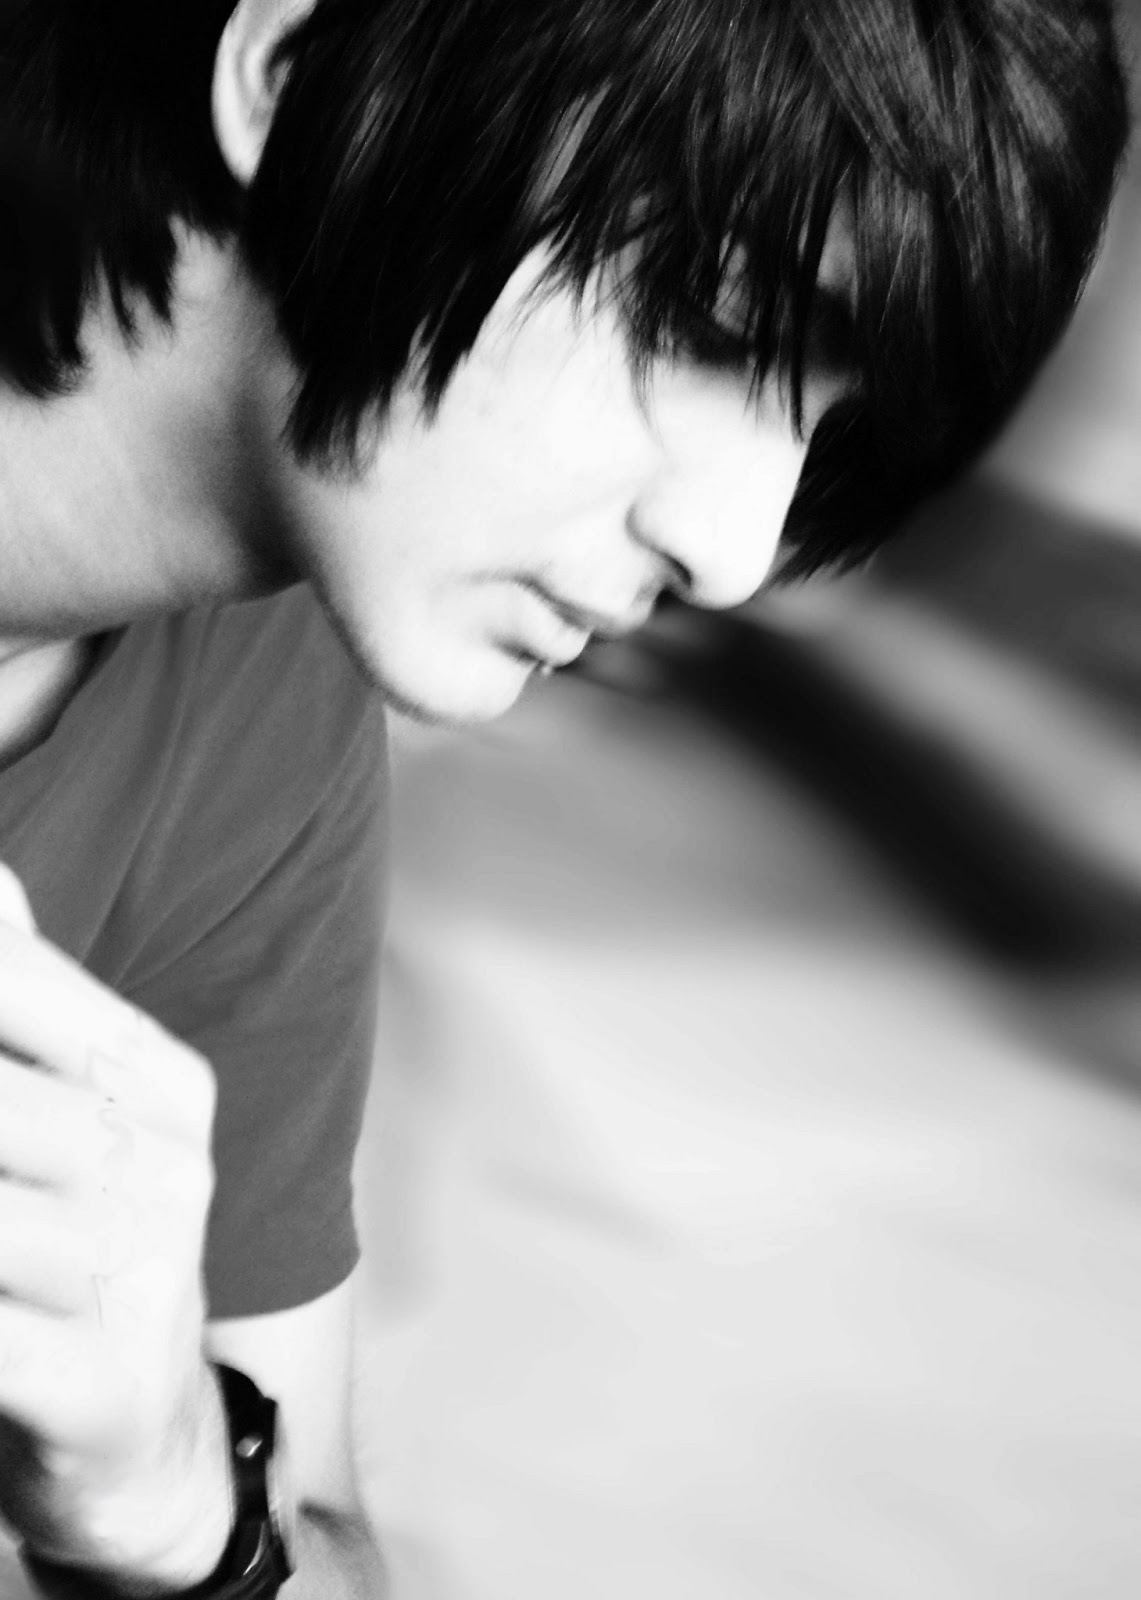 Emo Love Boy Wallpaper : Sad Emo HD Wallpapers